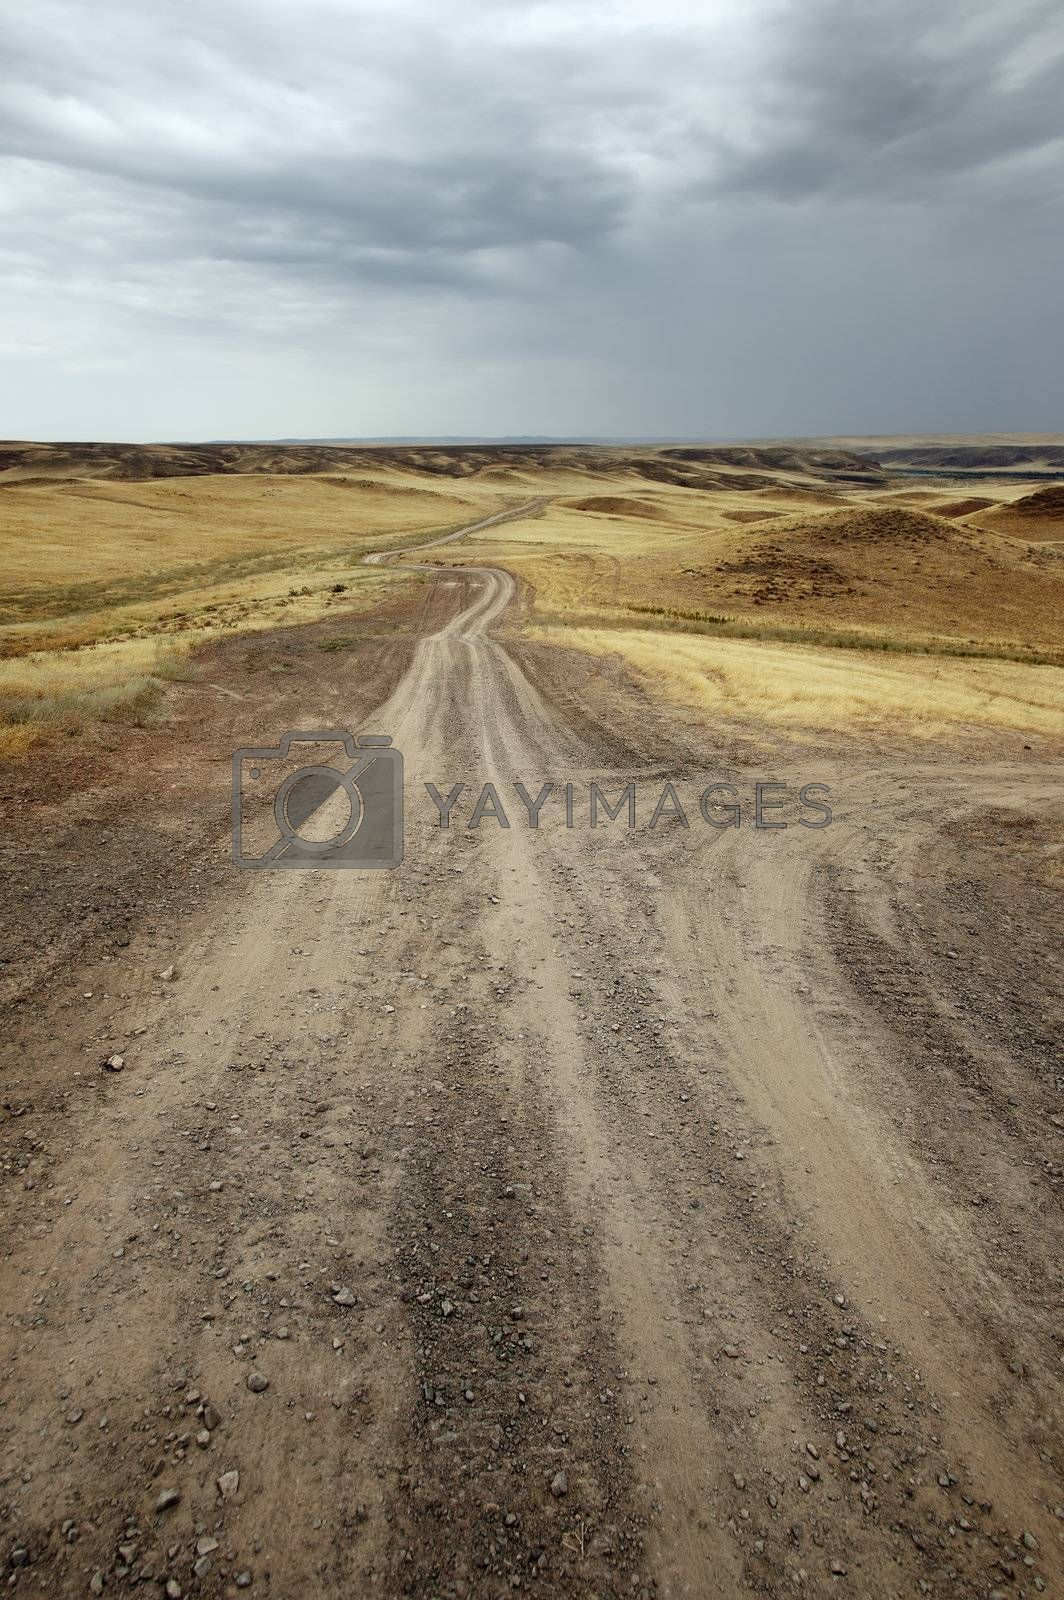 Photo of the country roads under the overcast